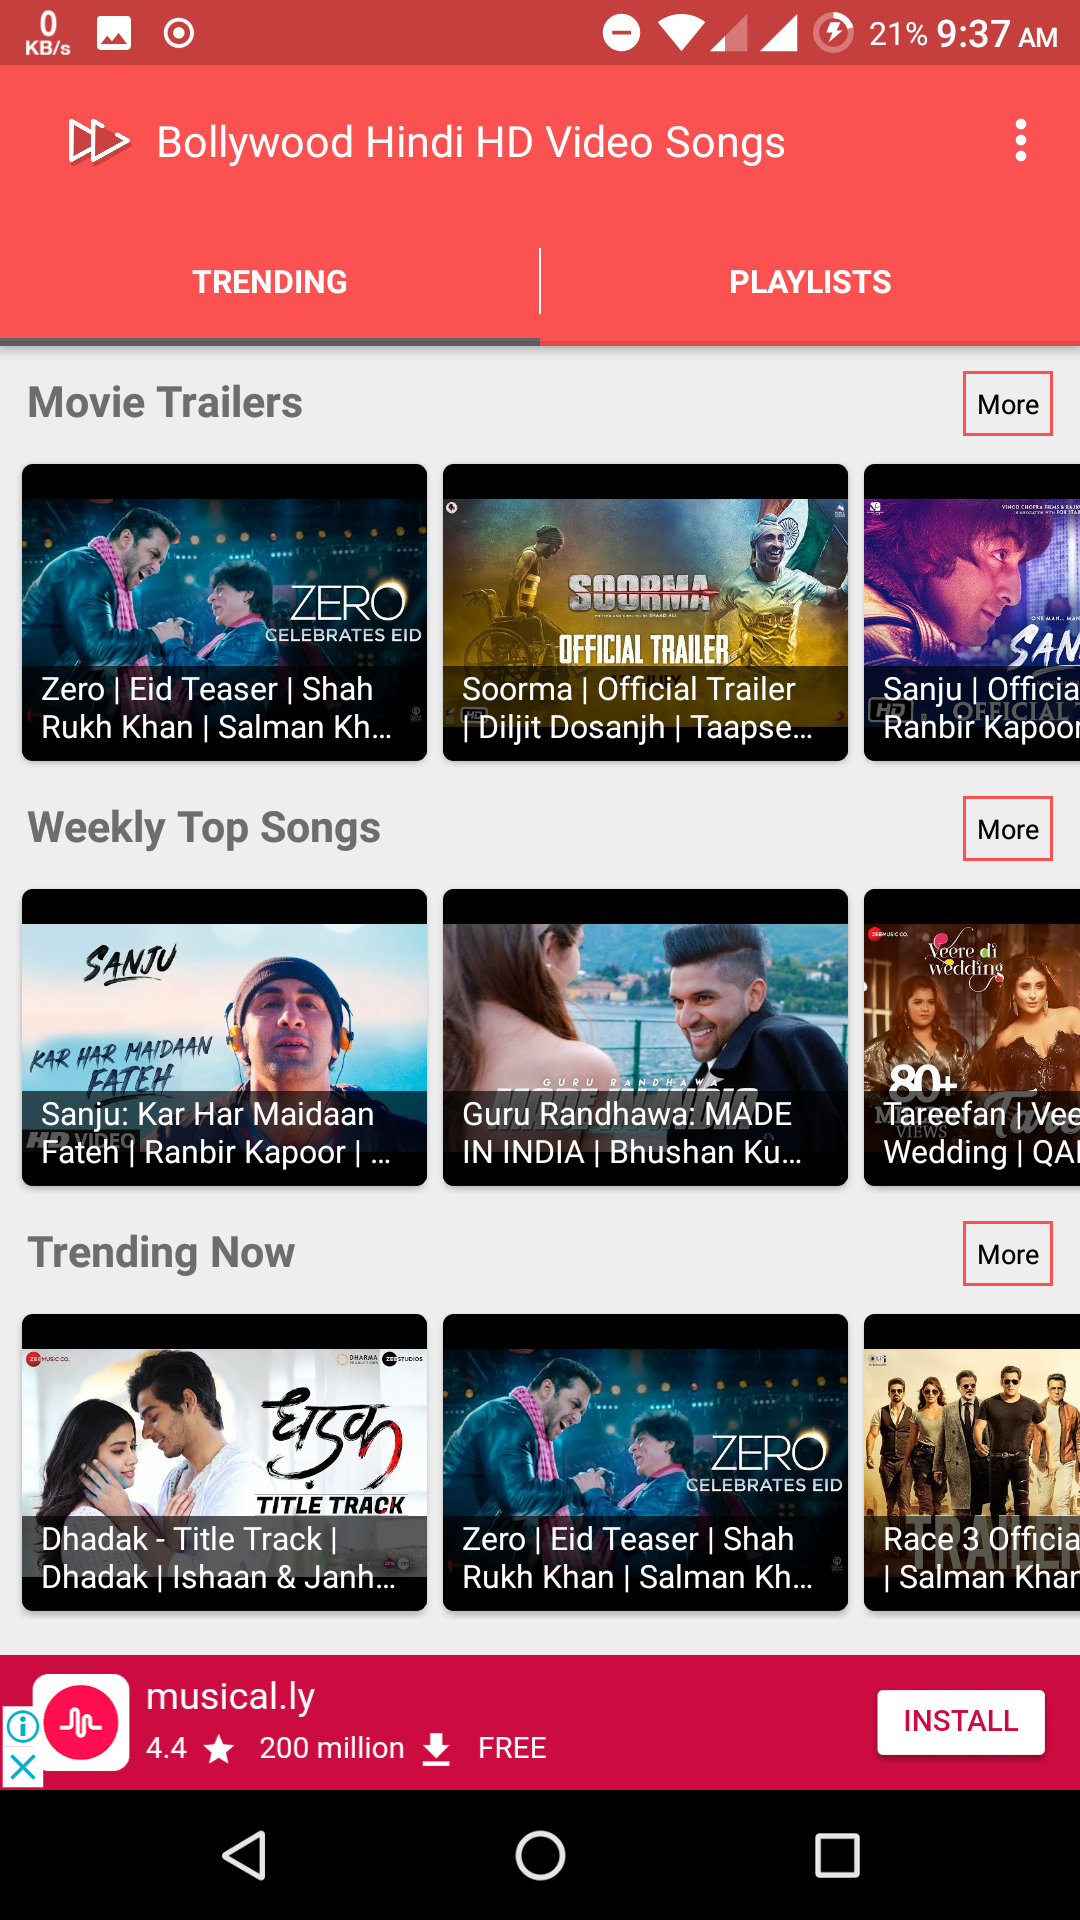 Hindi romantic songs 2019 bollywood video songs for android.